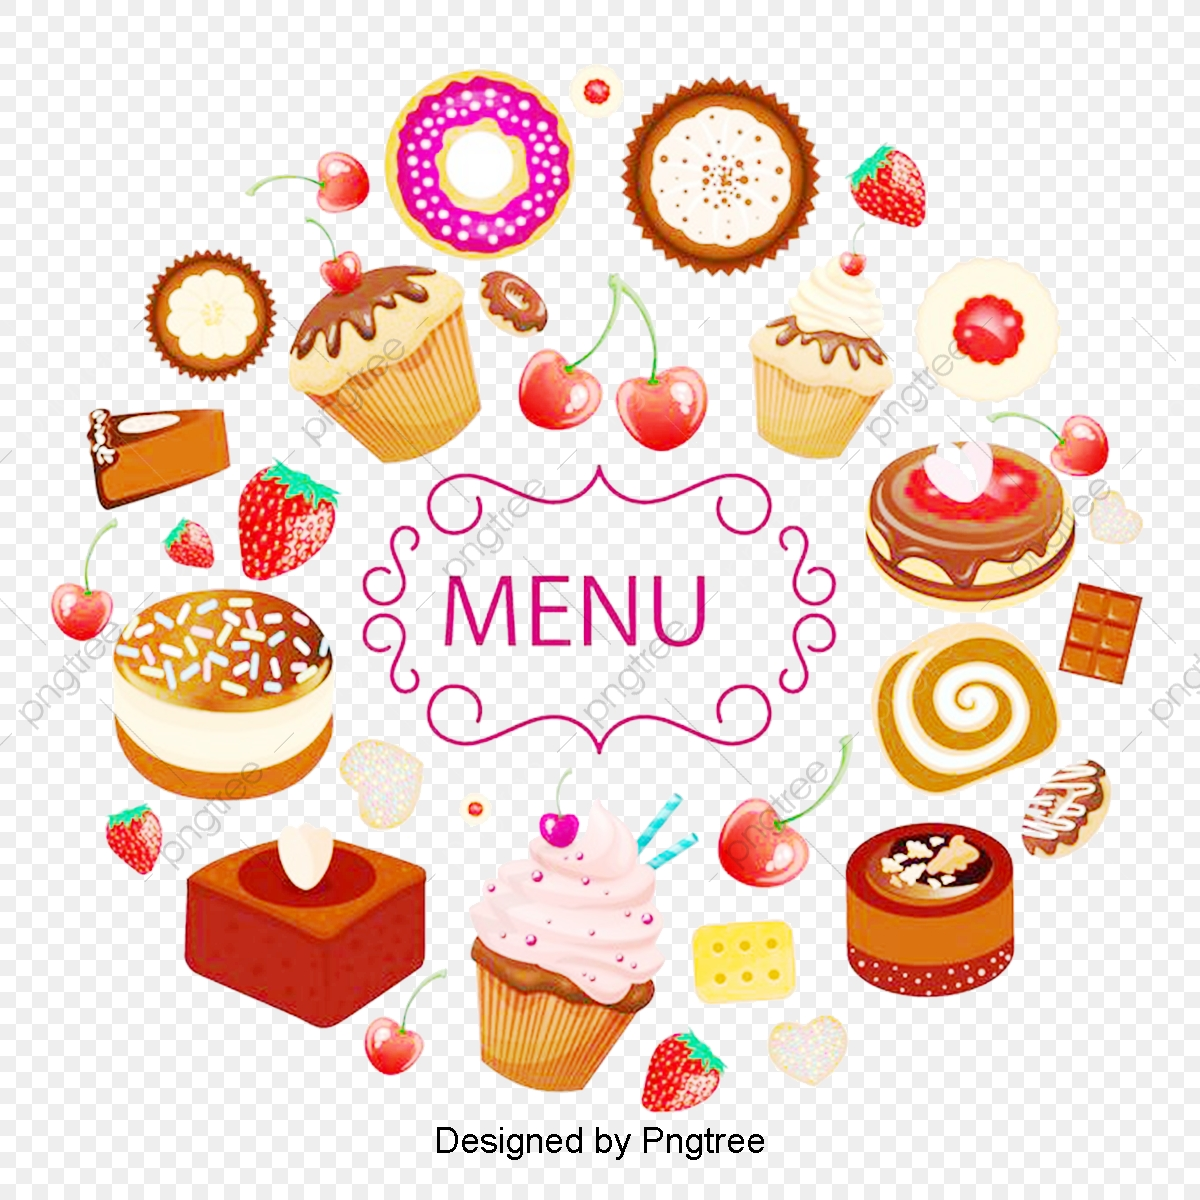 Chocolate Mini Cake PNG Clipart Picture | Gallery Yopriceville -  High-Quality Images and Transparent PNG Free Clipart